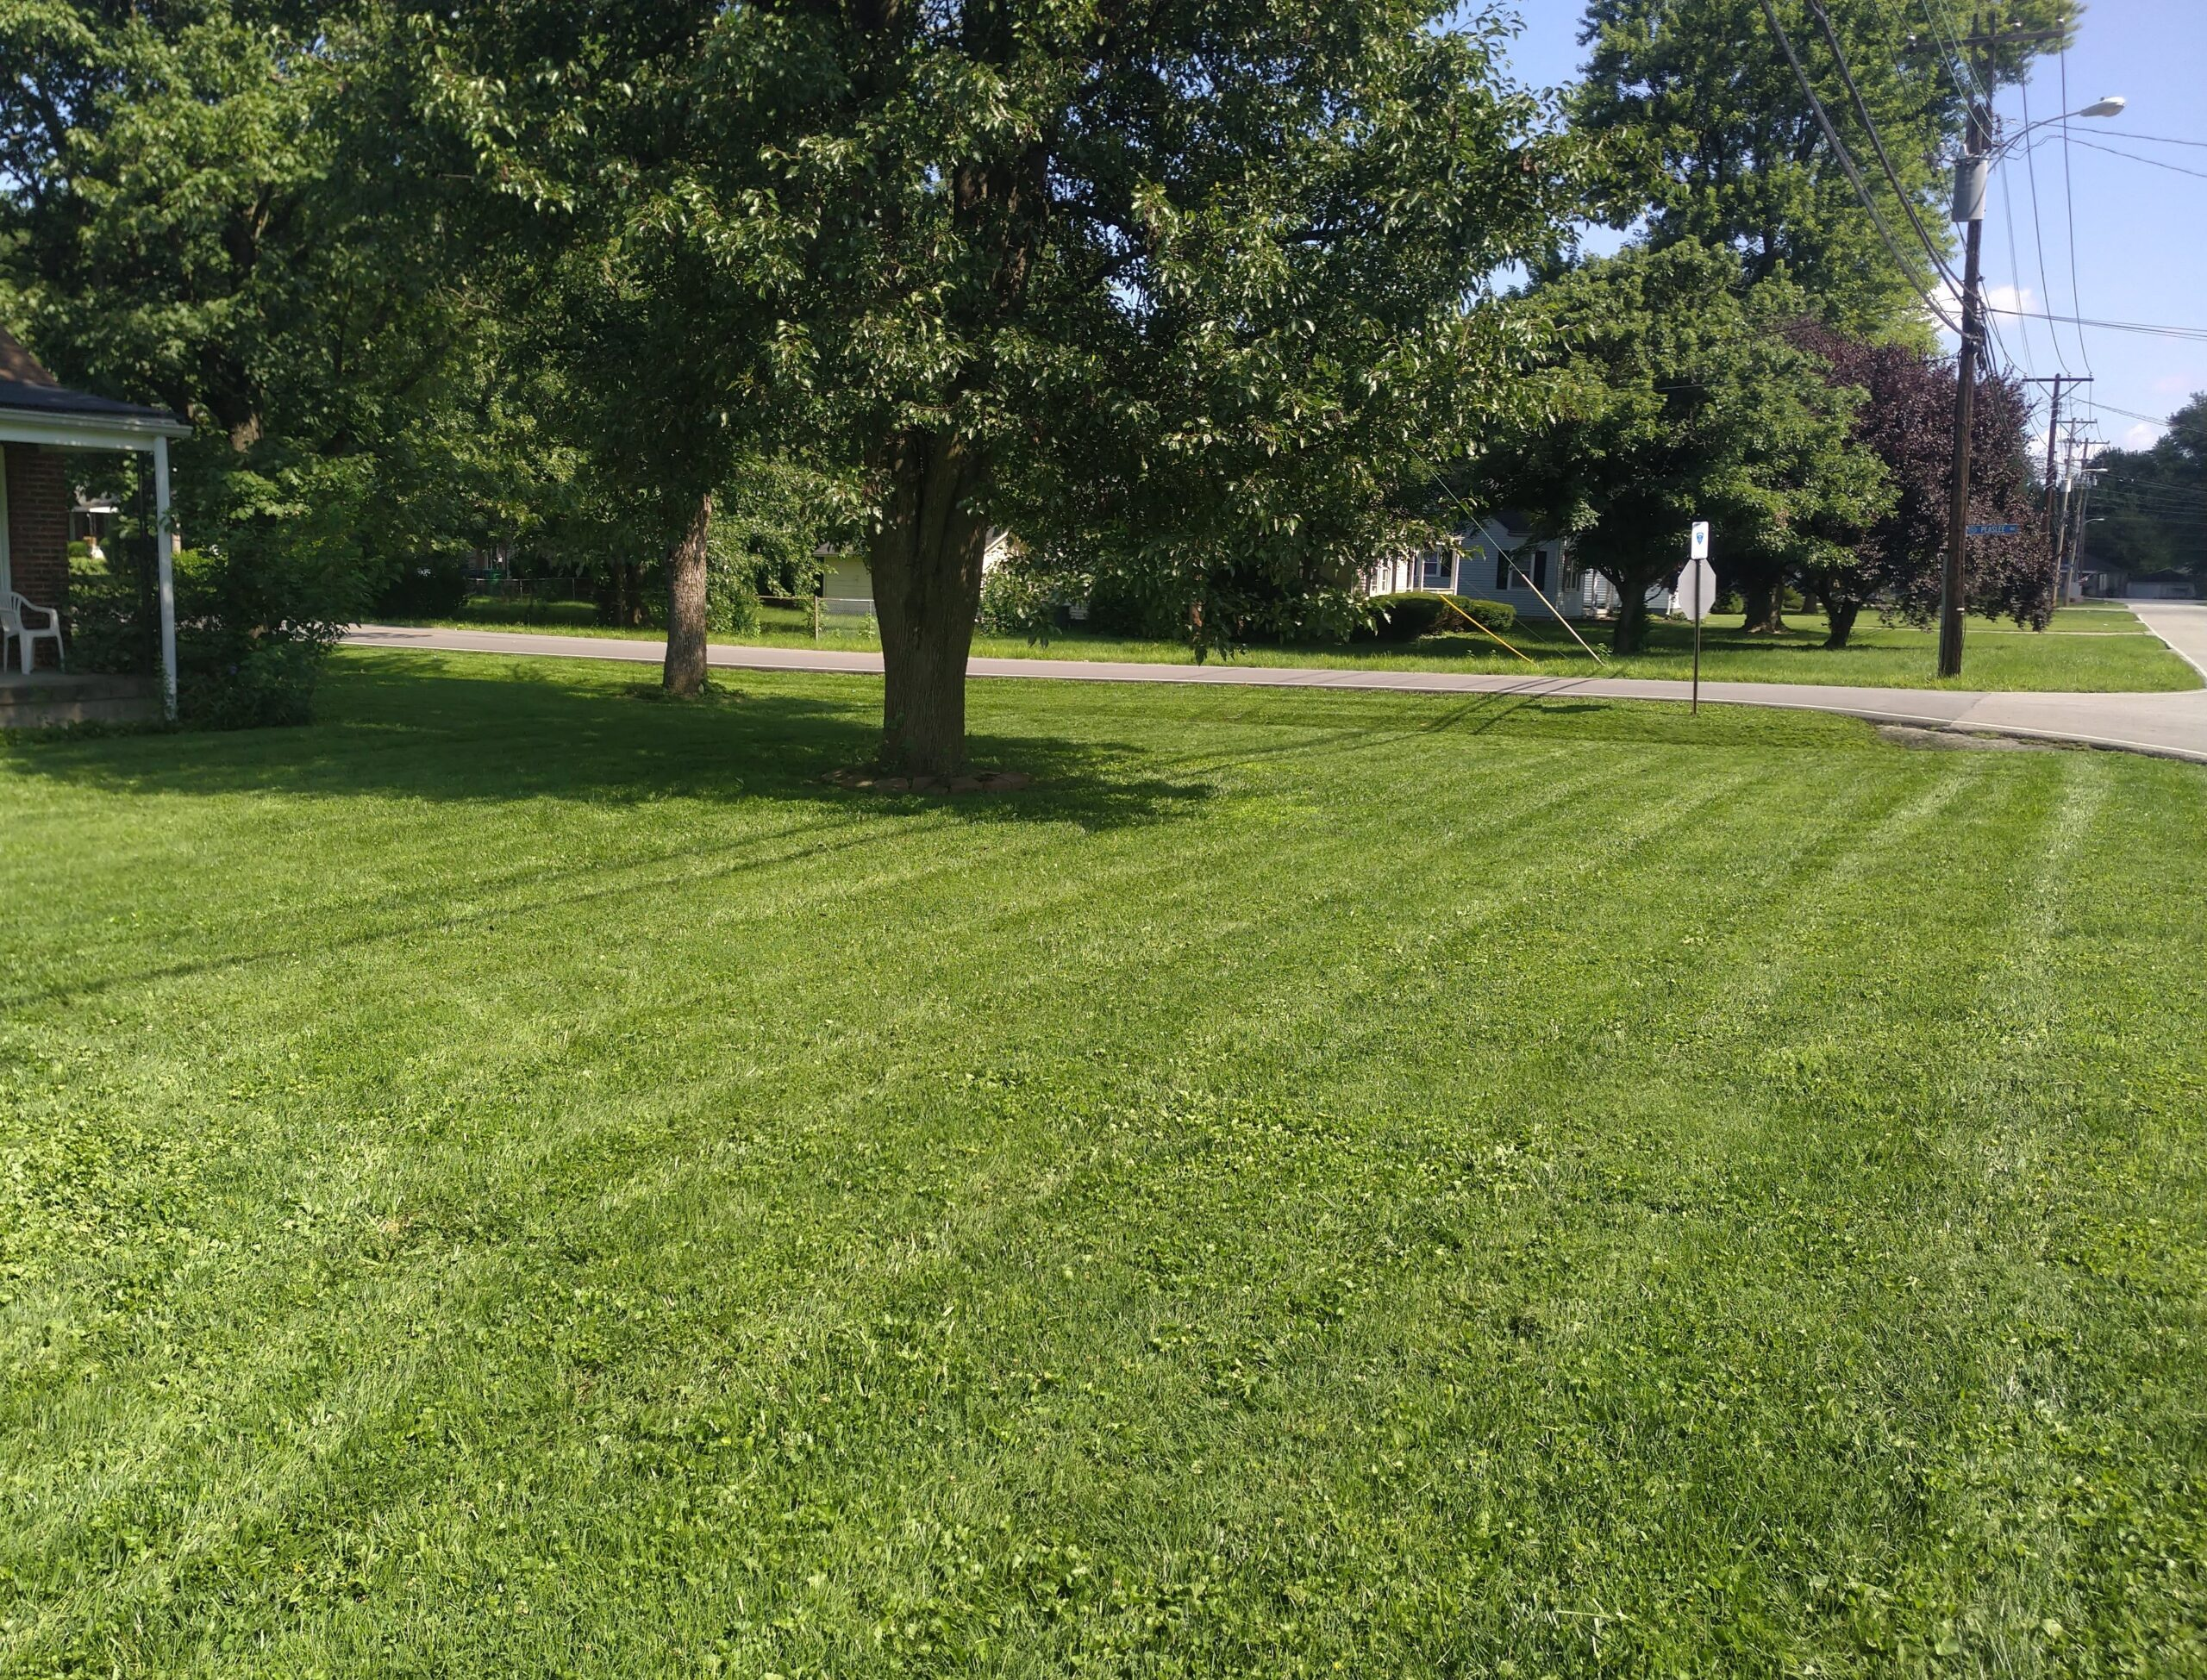 A residential home in Shively that has been serviced by ELCS. The grass has been recently mowed and all clippings have been cleaned up. There are visible mowing stripes in the grass.